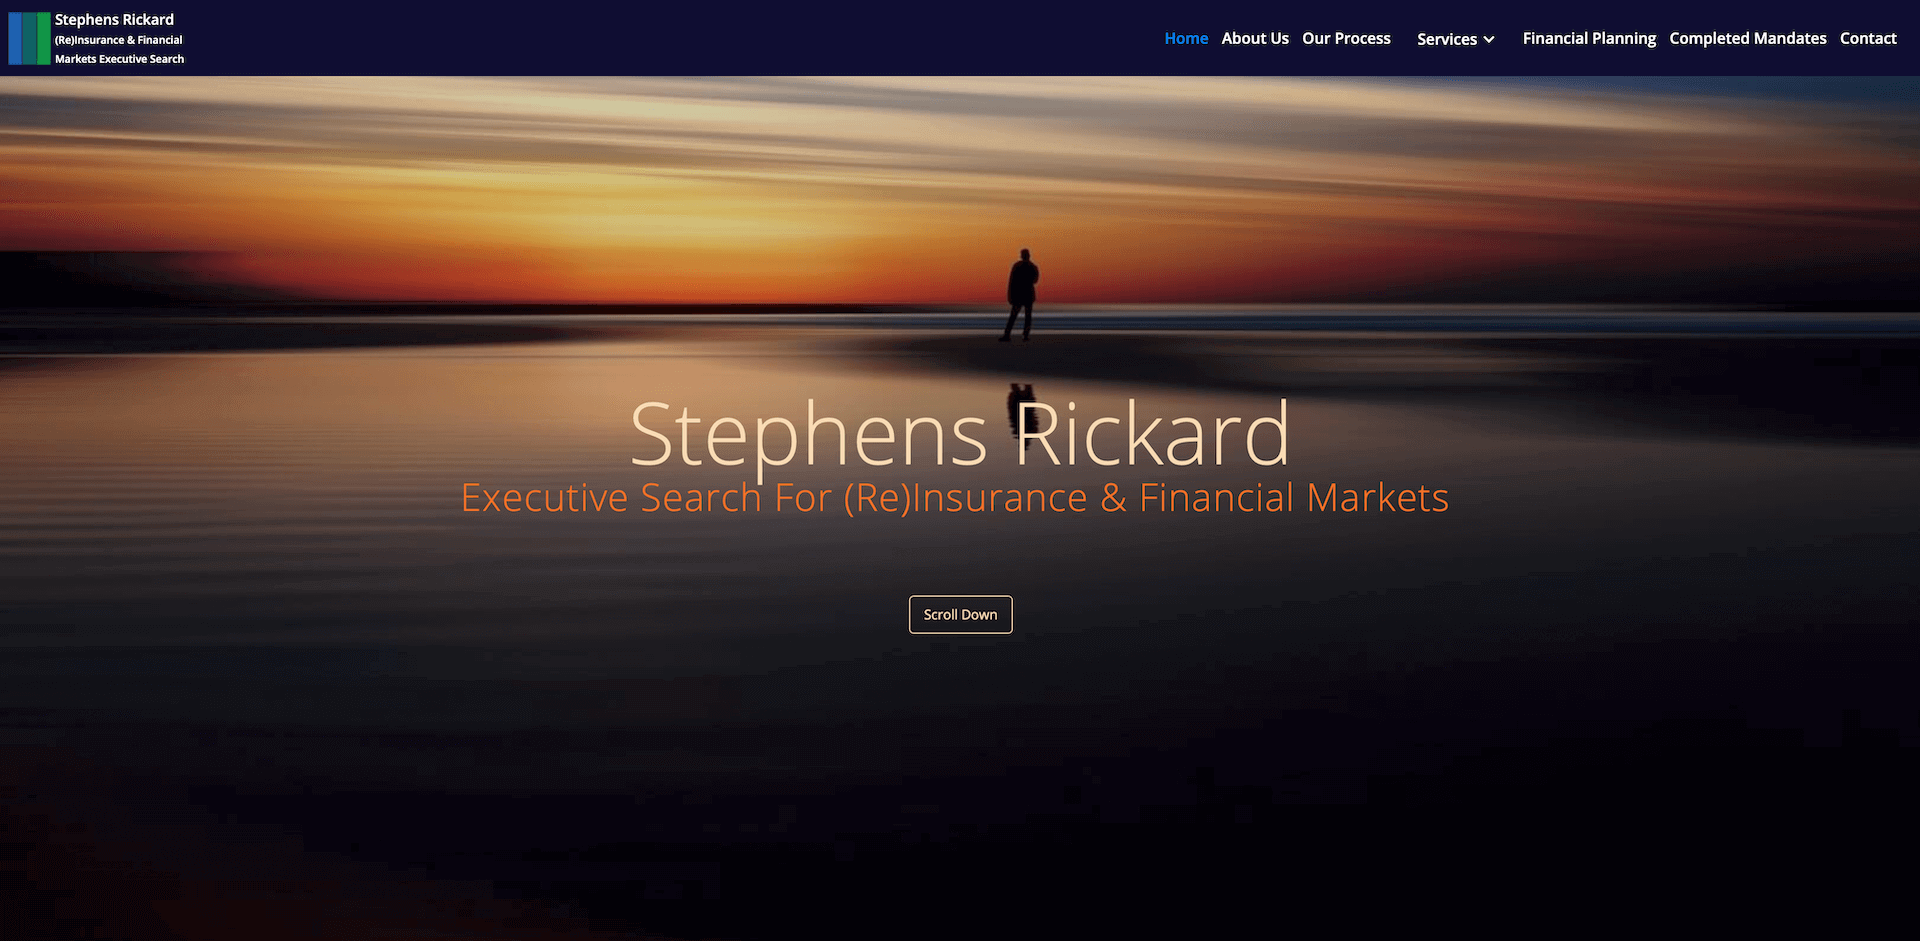 Executive Search Web Design